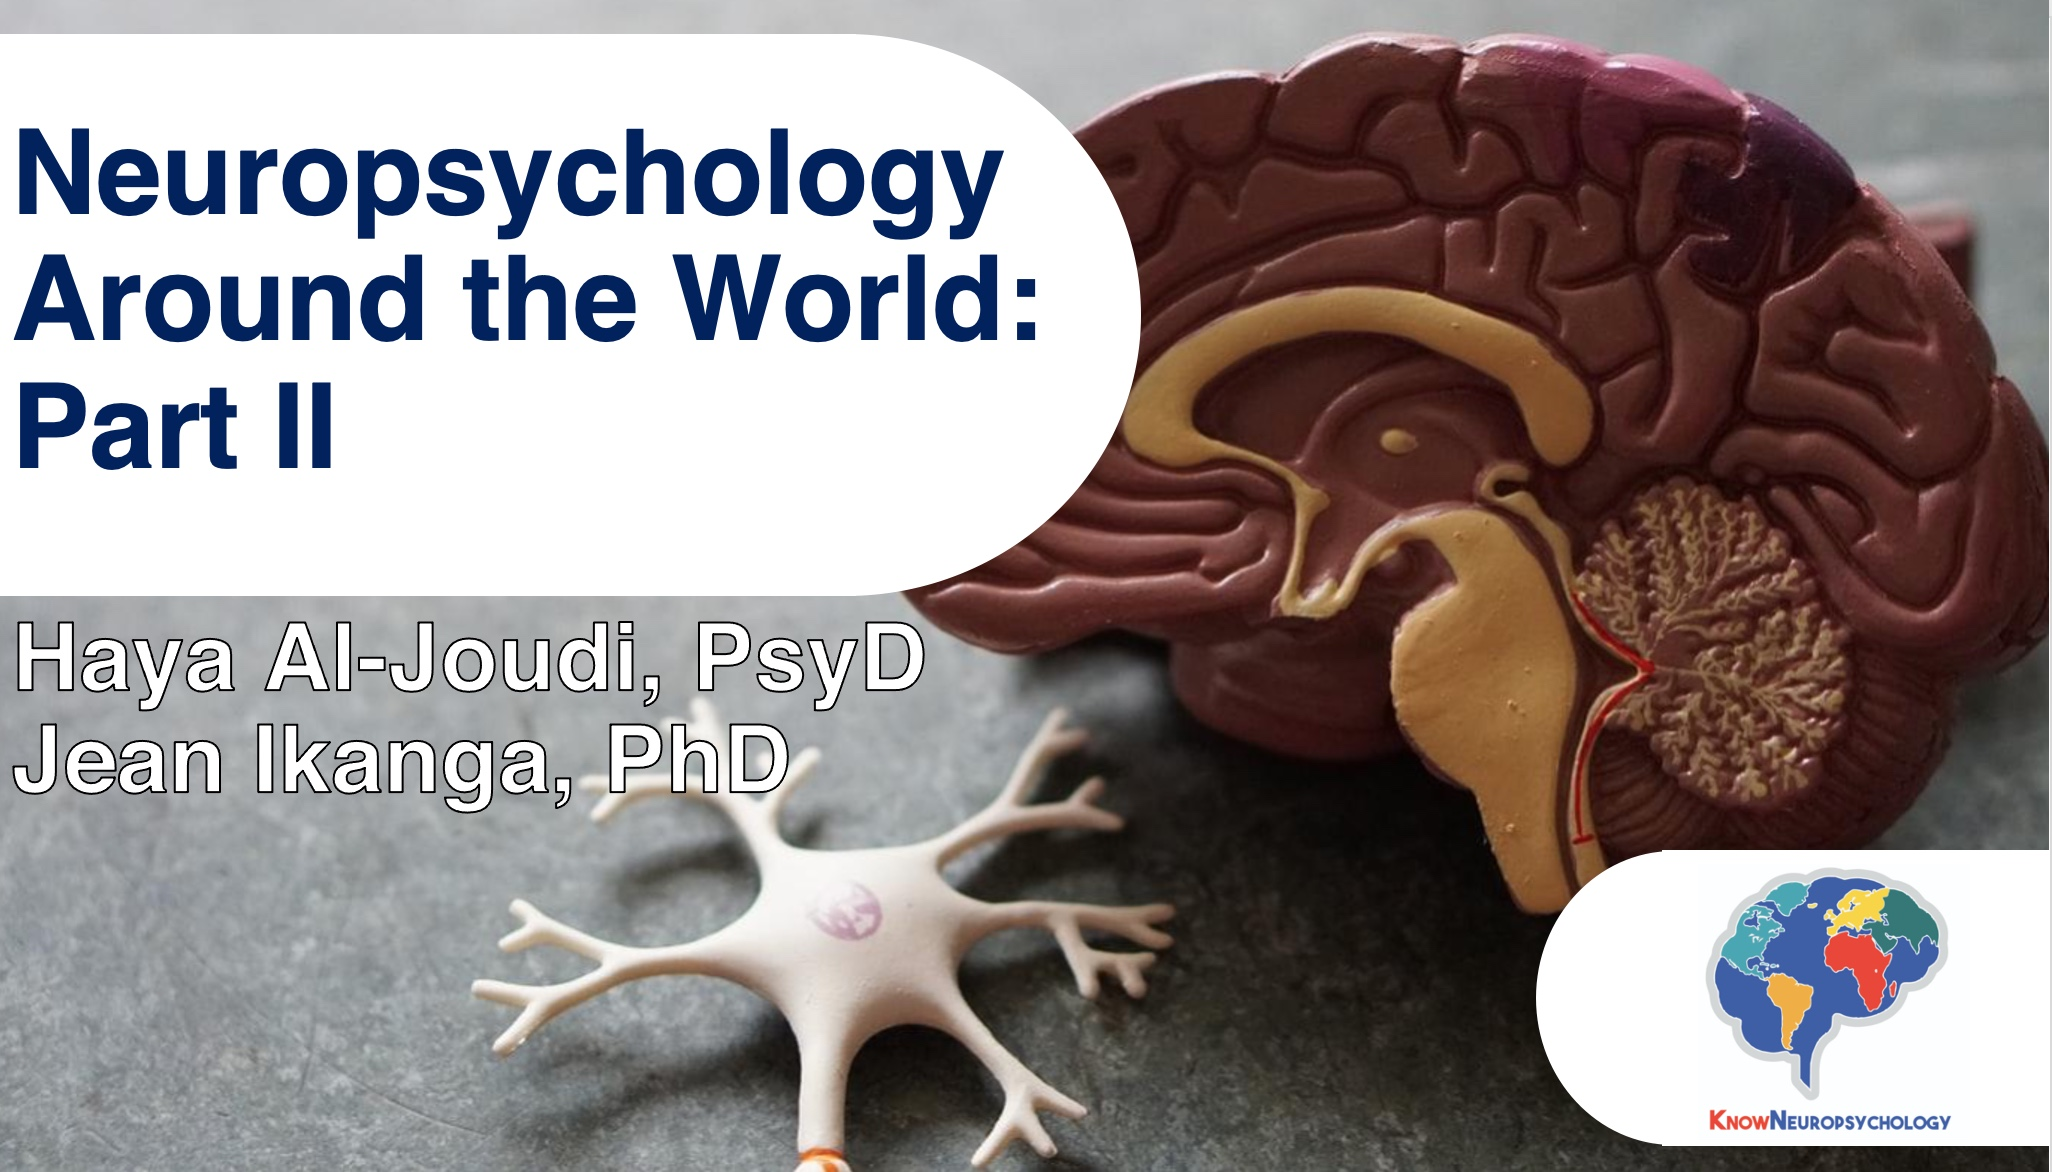 Neuropsychology around the world: Part 2 by Dr. Jean Ikanga from Democratic Republic of the Congoand and Dr. Haya Al-Joudi from Saudi Arabia